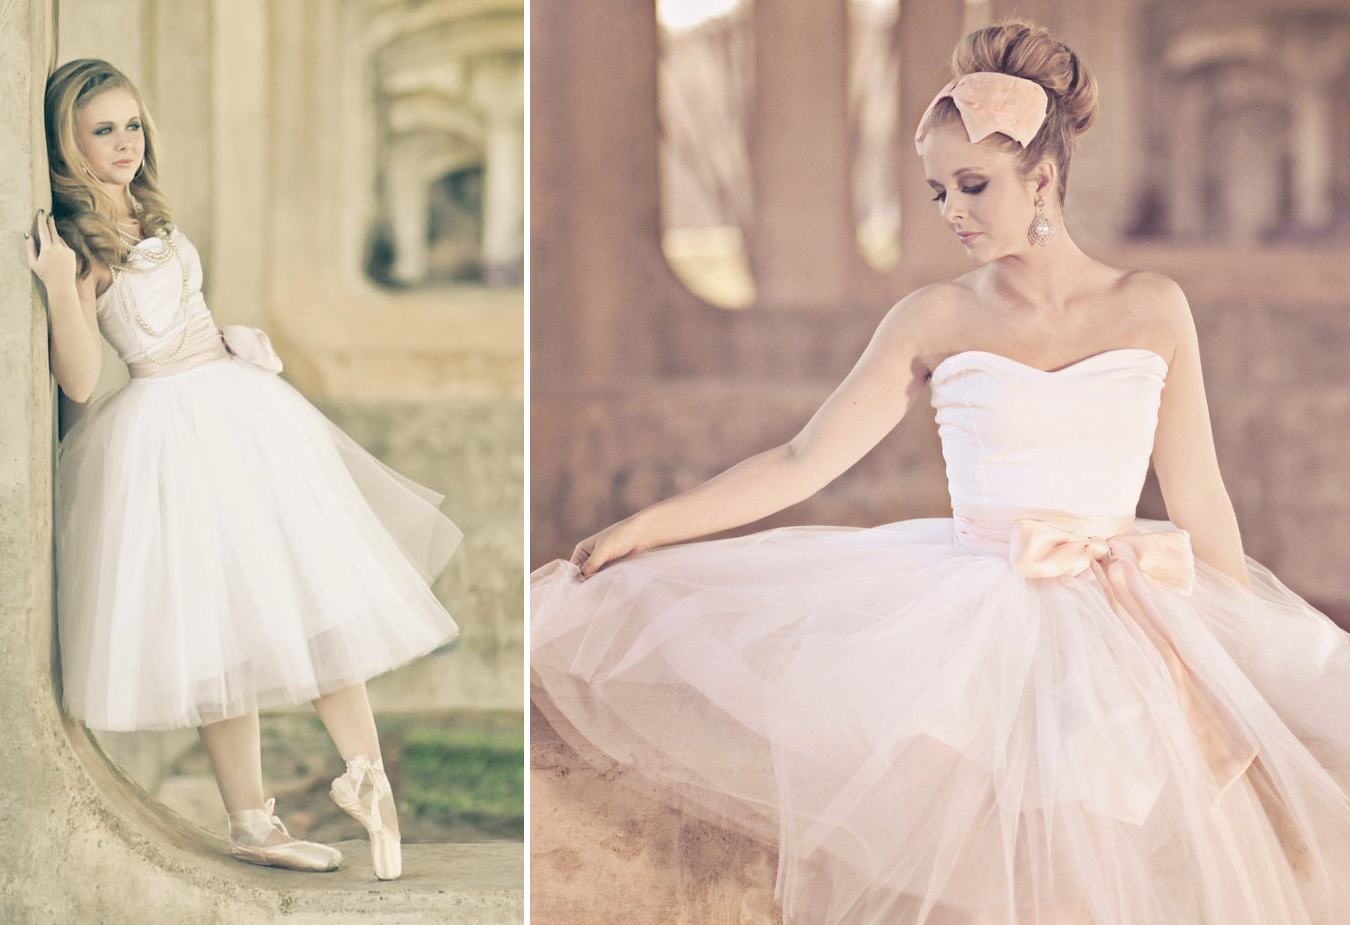 ballerina inspired wedding blush tulle wedding dress images about Ballerina inspired wedding on Pinterest Adobe Ballet and Tulle wedding dresses